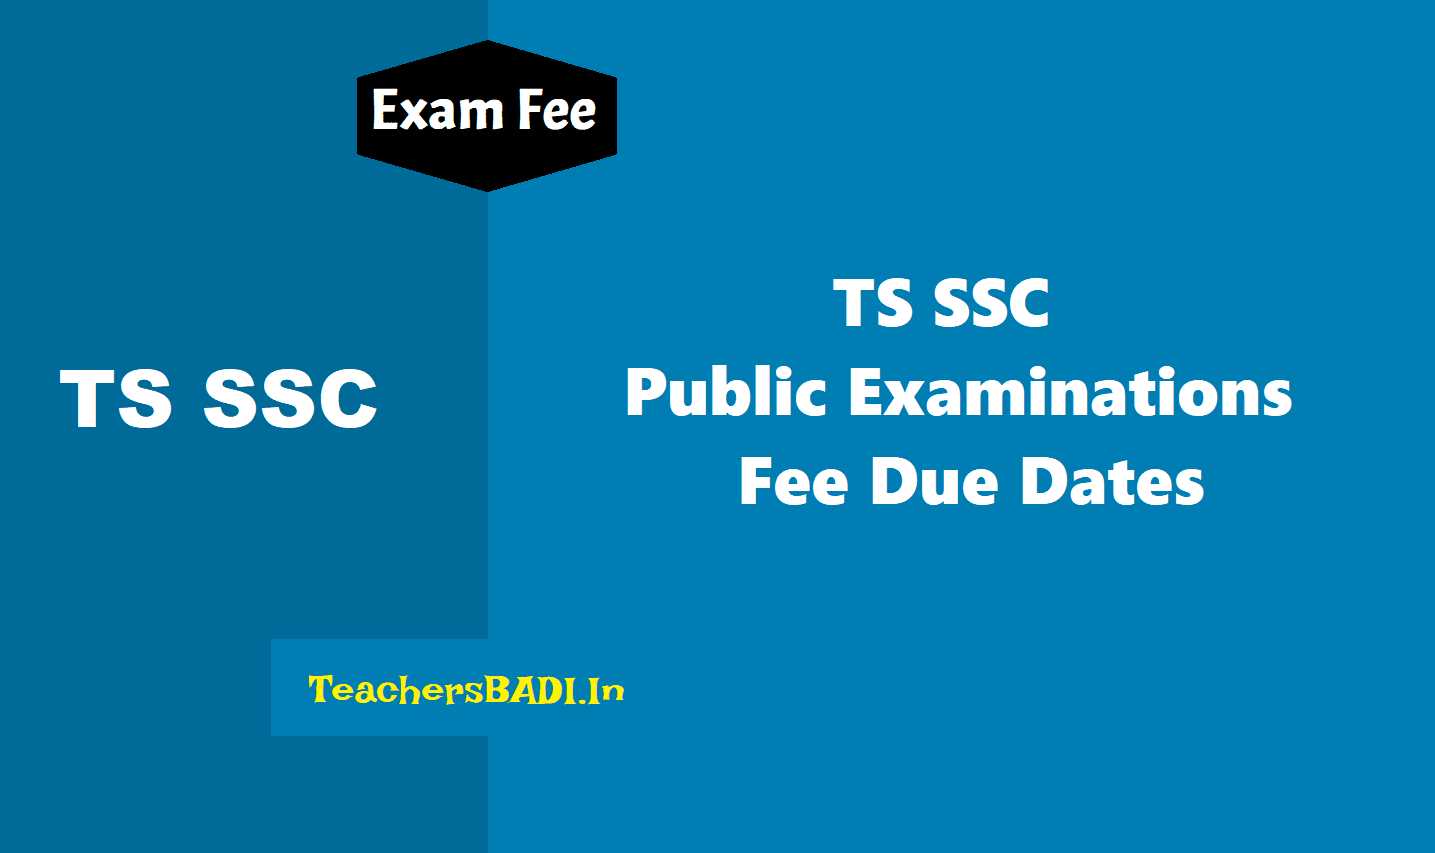 ts ssc 2019 exams fee dates,ssc march 2019 exams fee schedule,ts ssc exams 2019 fee dates,bse telangana ssc exams 2019 exams fee head of account,ddo code,ssc,ossc,vocational